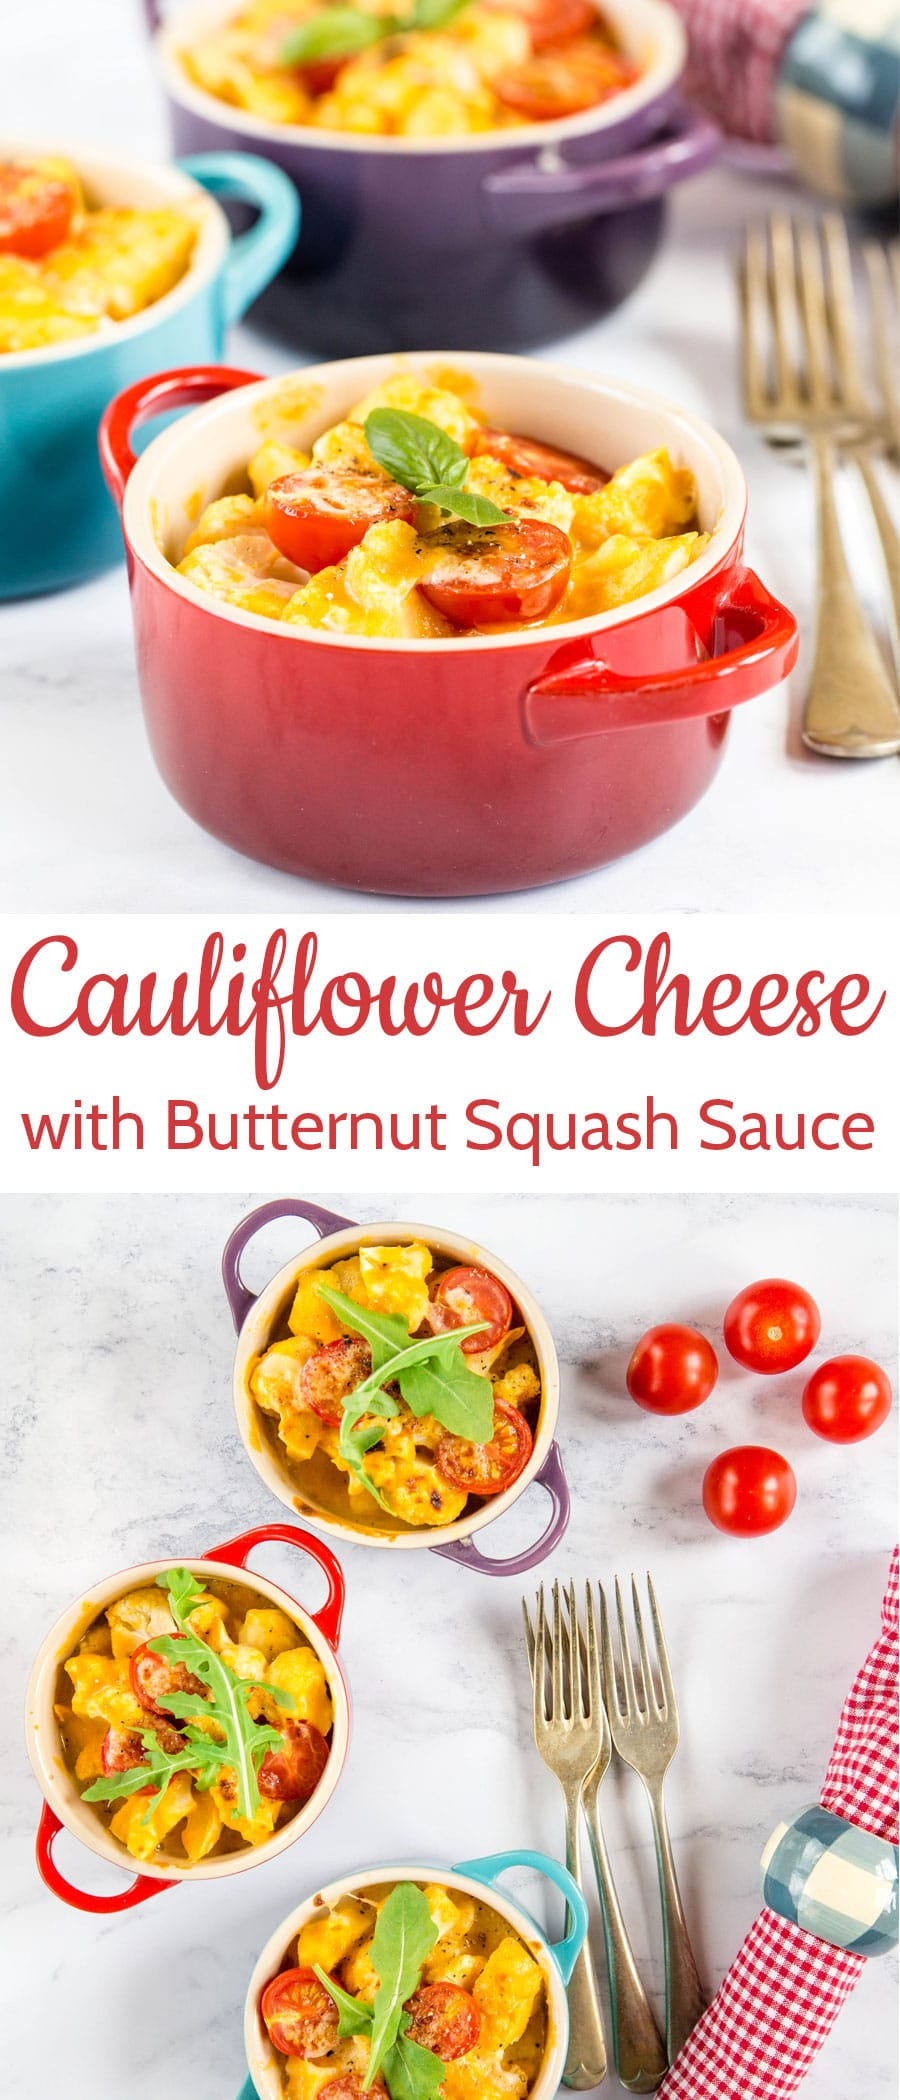 A delicious cauliflower cheese with added veg from a roast butternut squash cheese sauce. It's gluten free too!